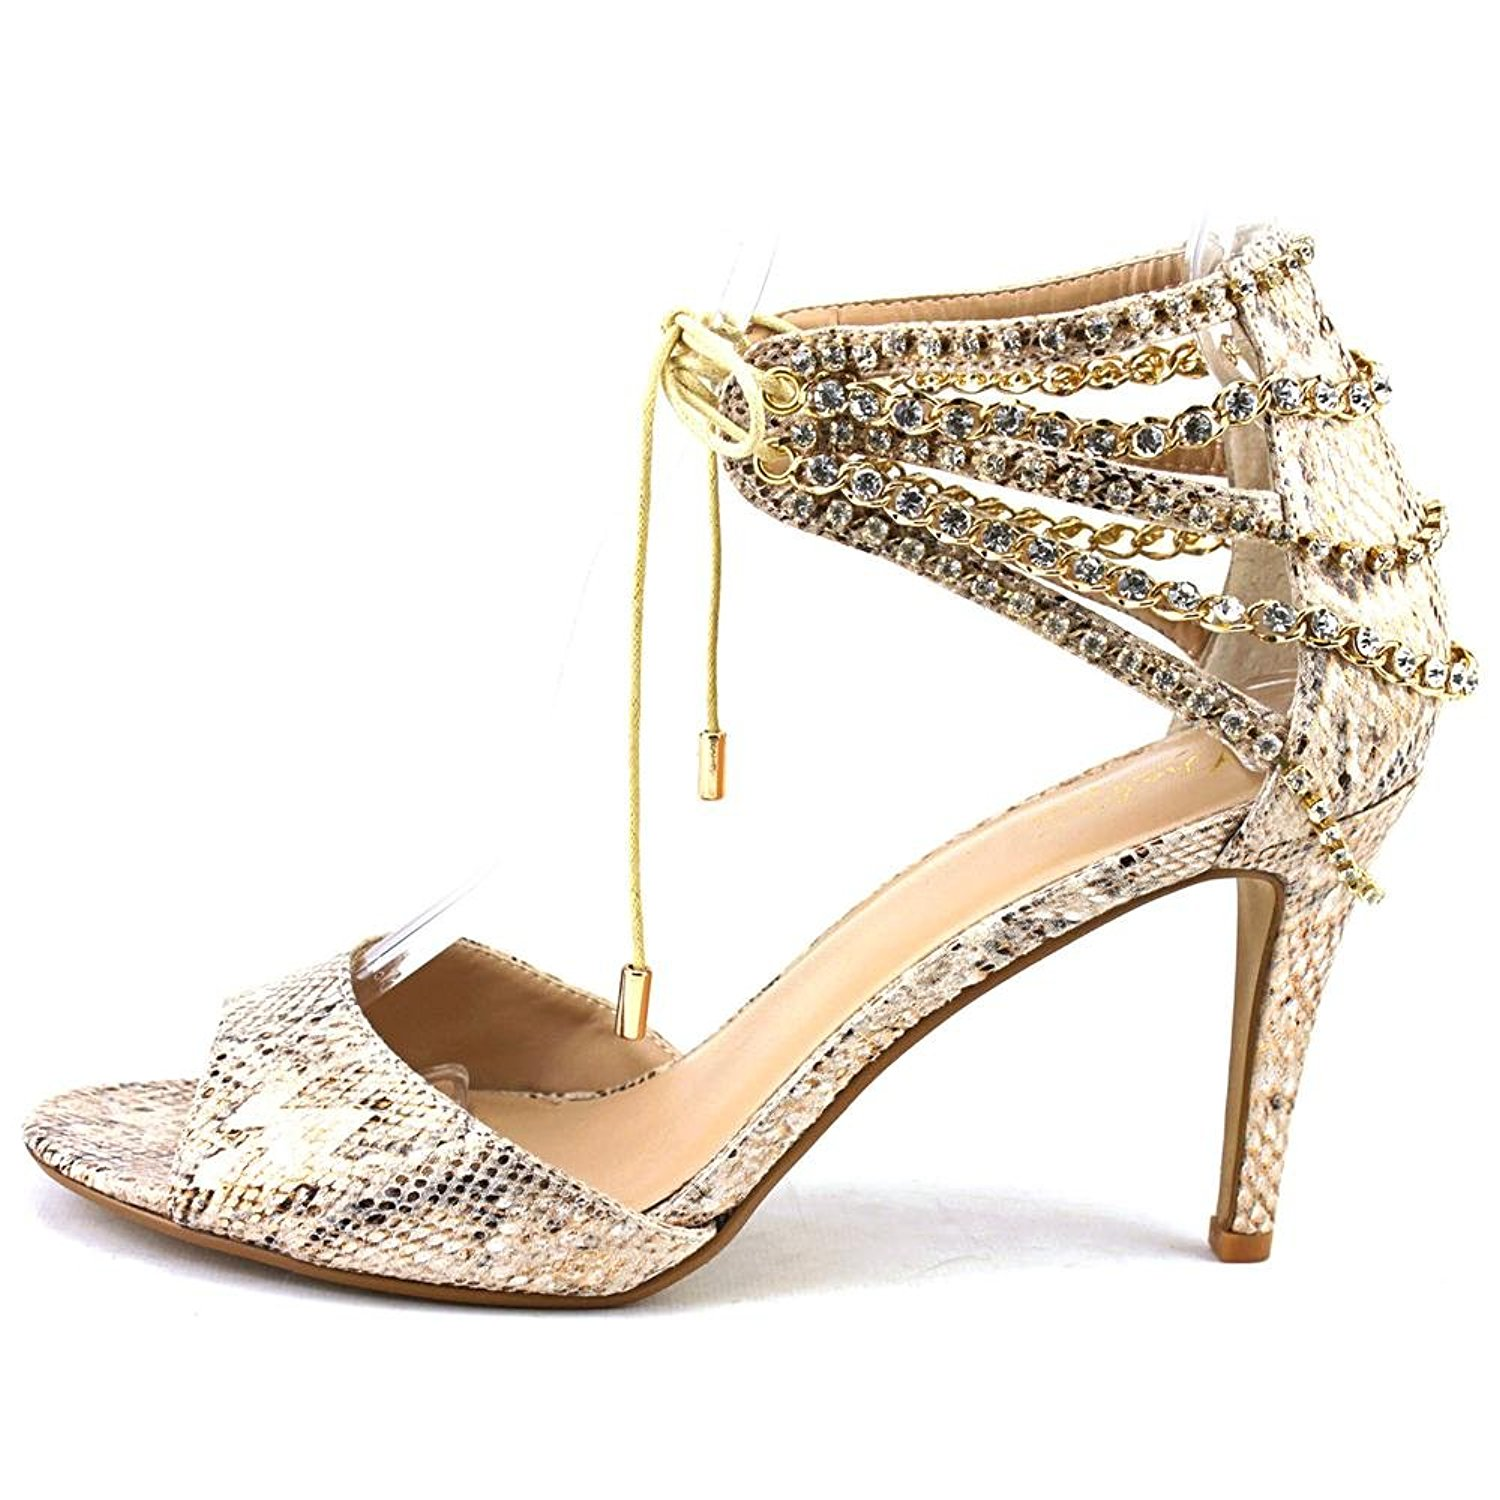 Thalia Sodi Womens EVAHLY Open Toe Special Occasion Champagne Snake Size 8.5 h